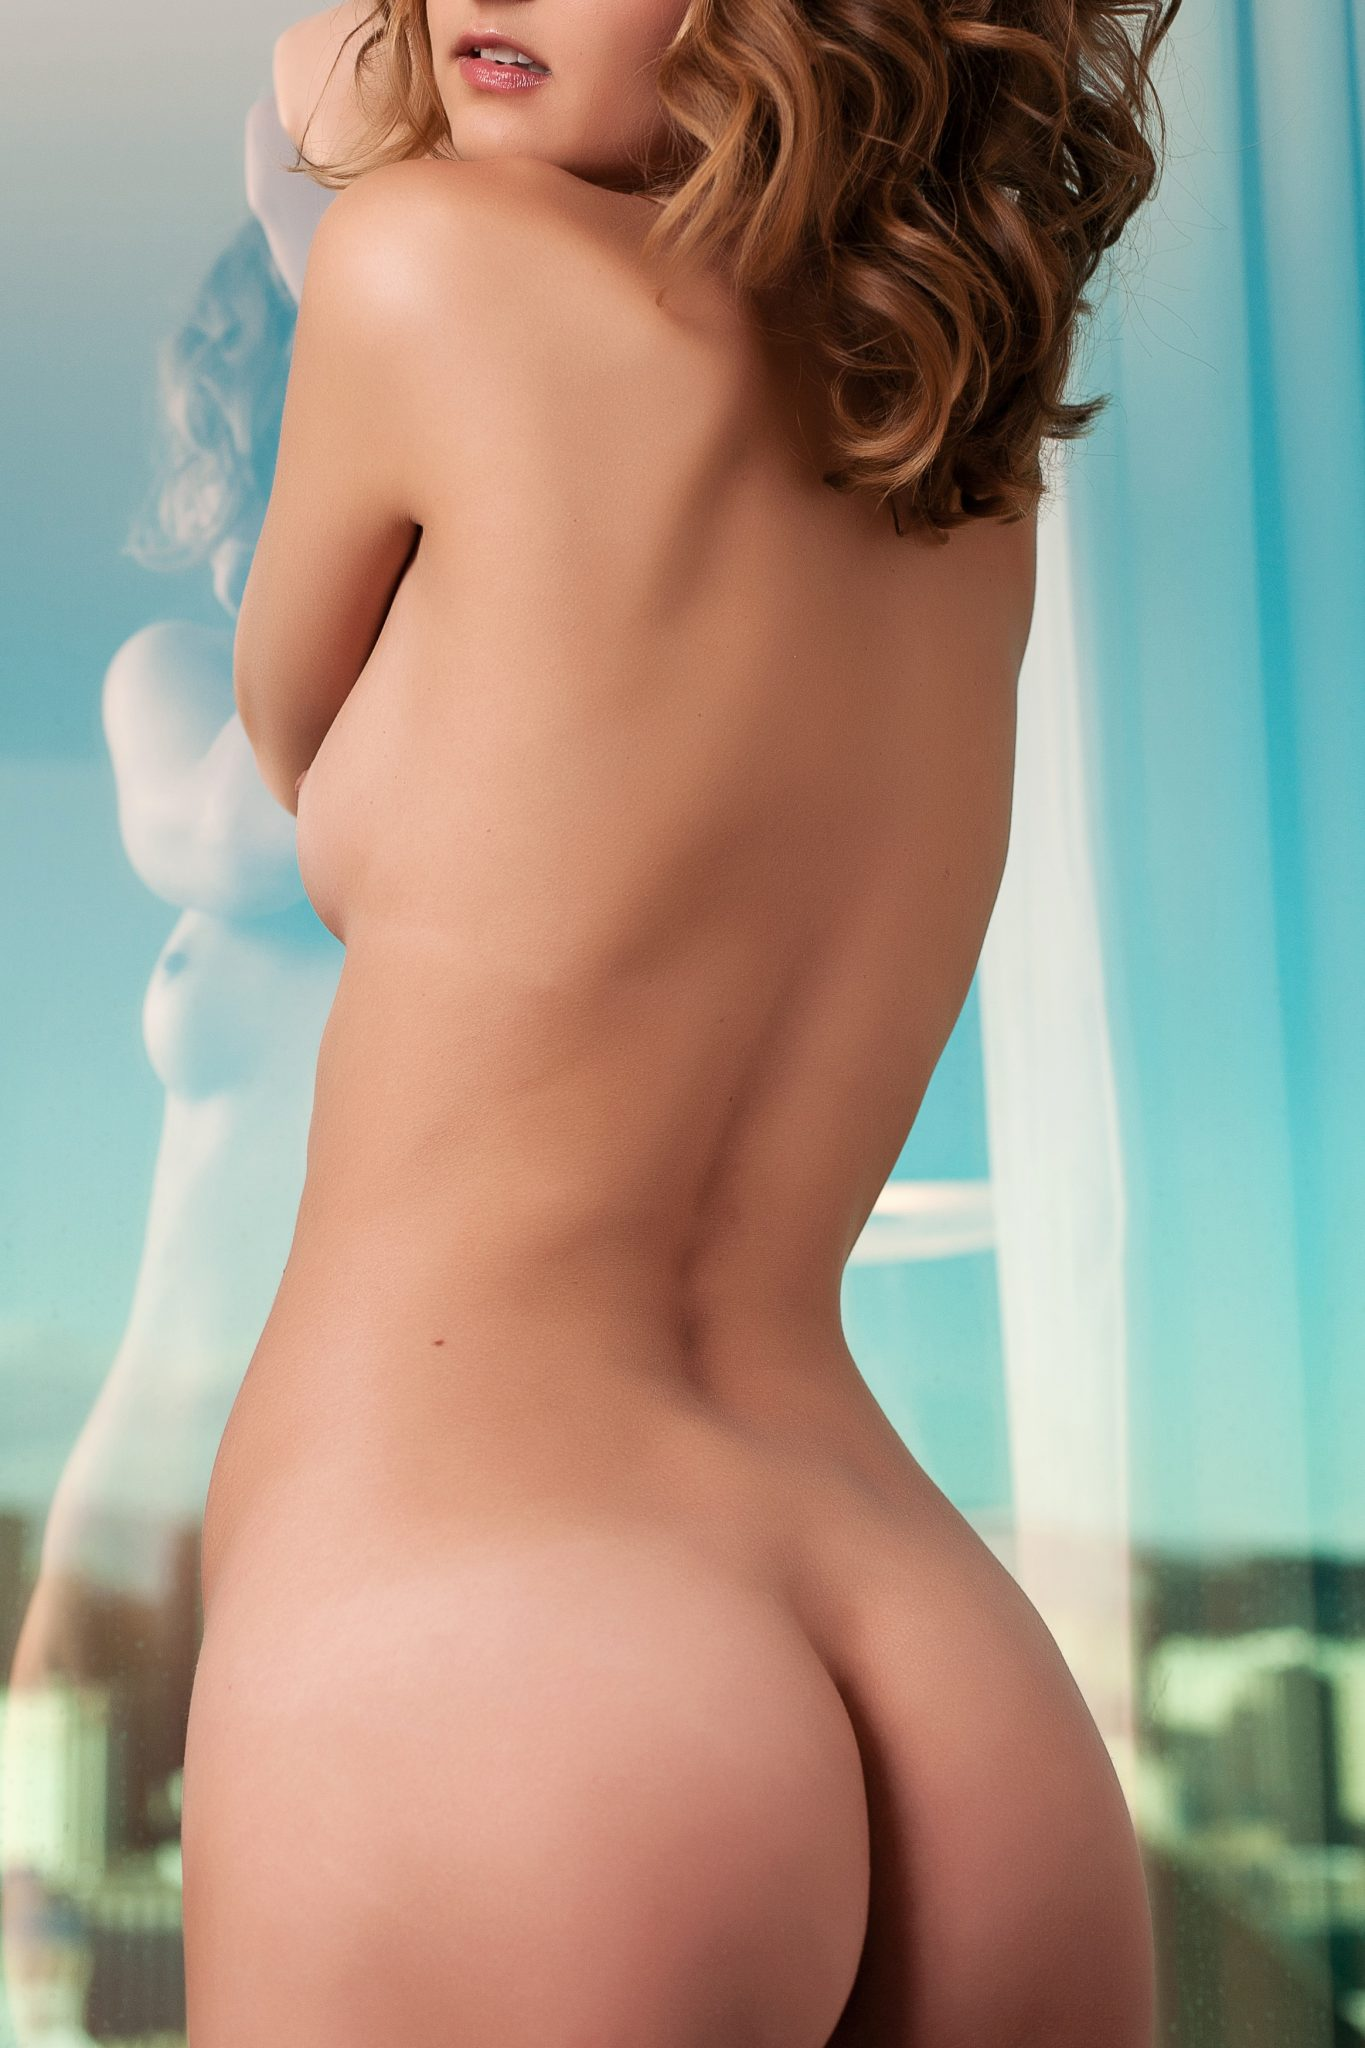 Lovely use of reflection in this fine art nude photo from a boudoir session by Stacie Frazier of Haute Shots in Vegas